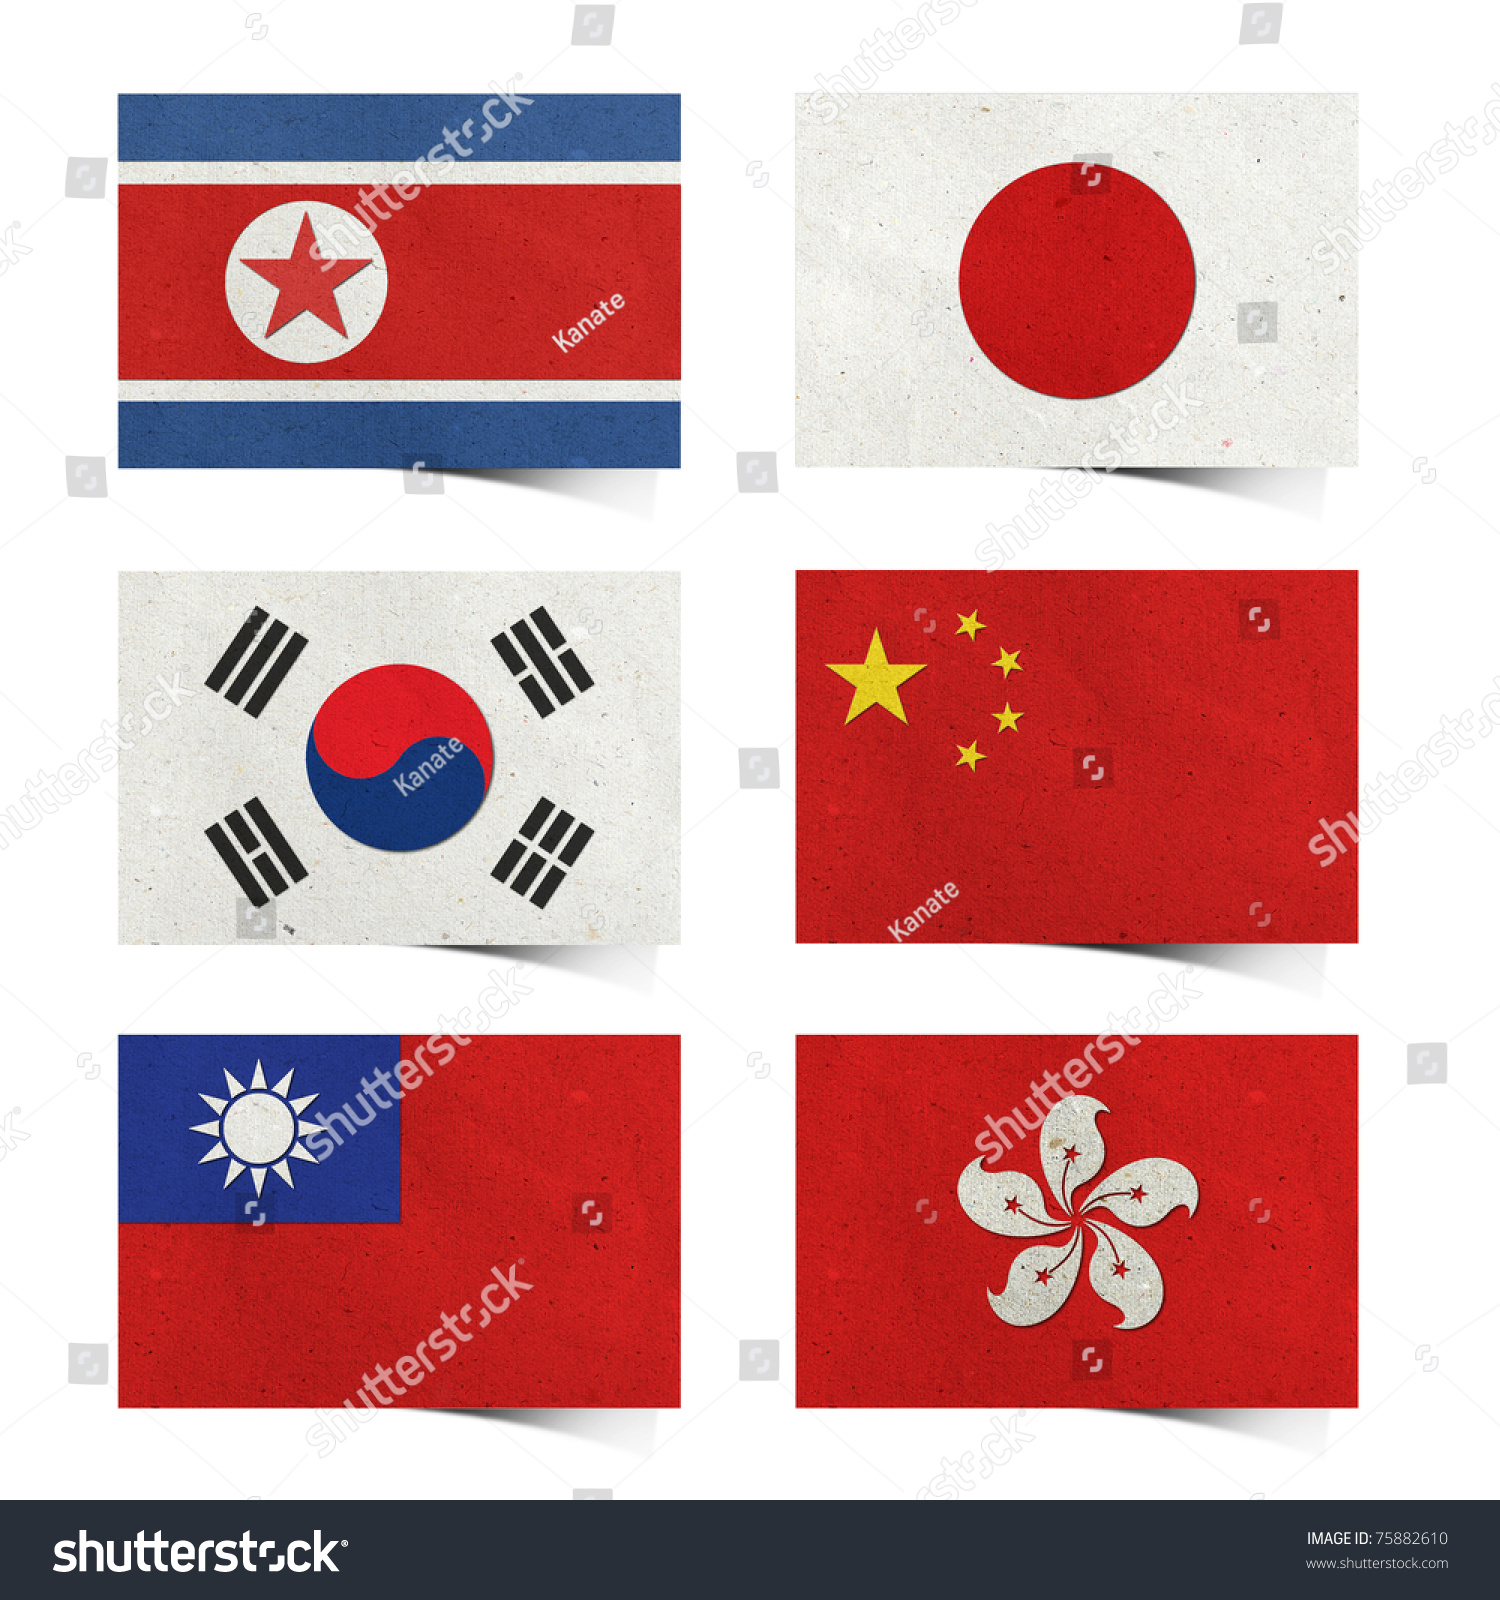 Examples List on Asian Nations